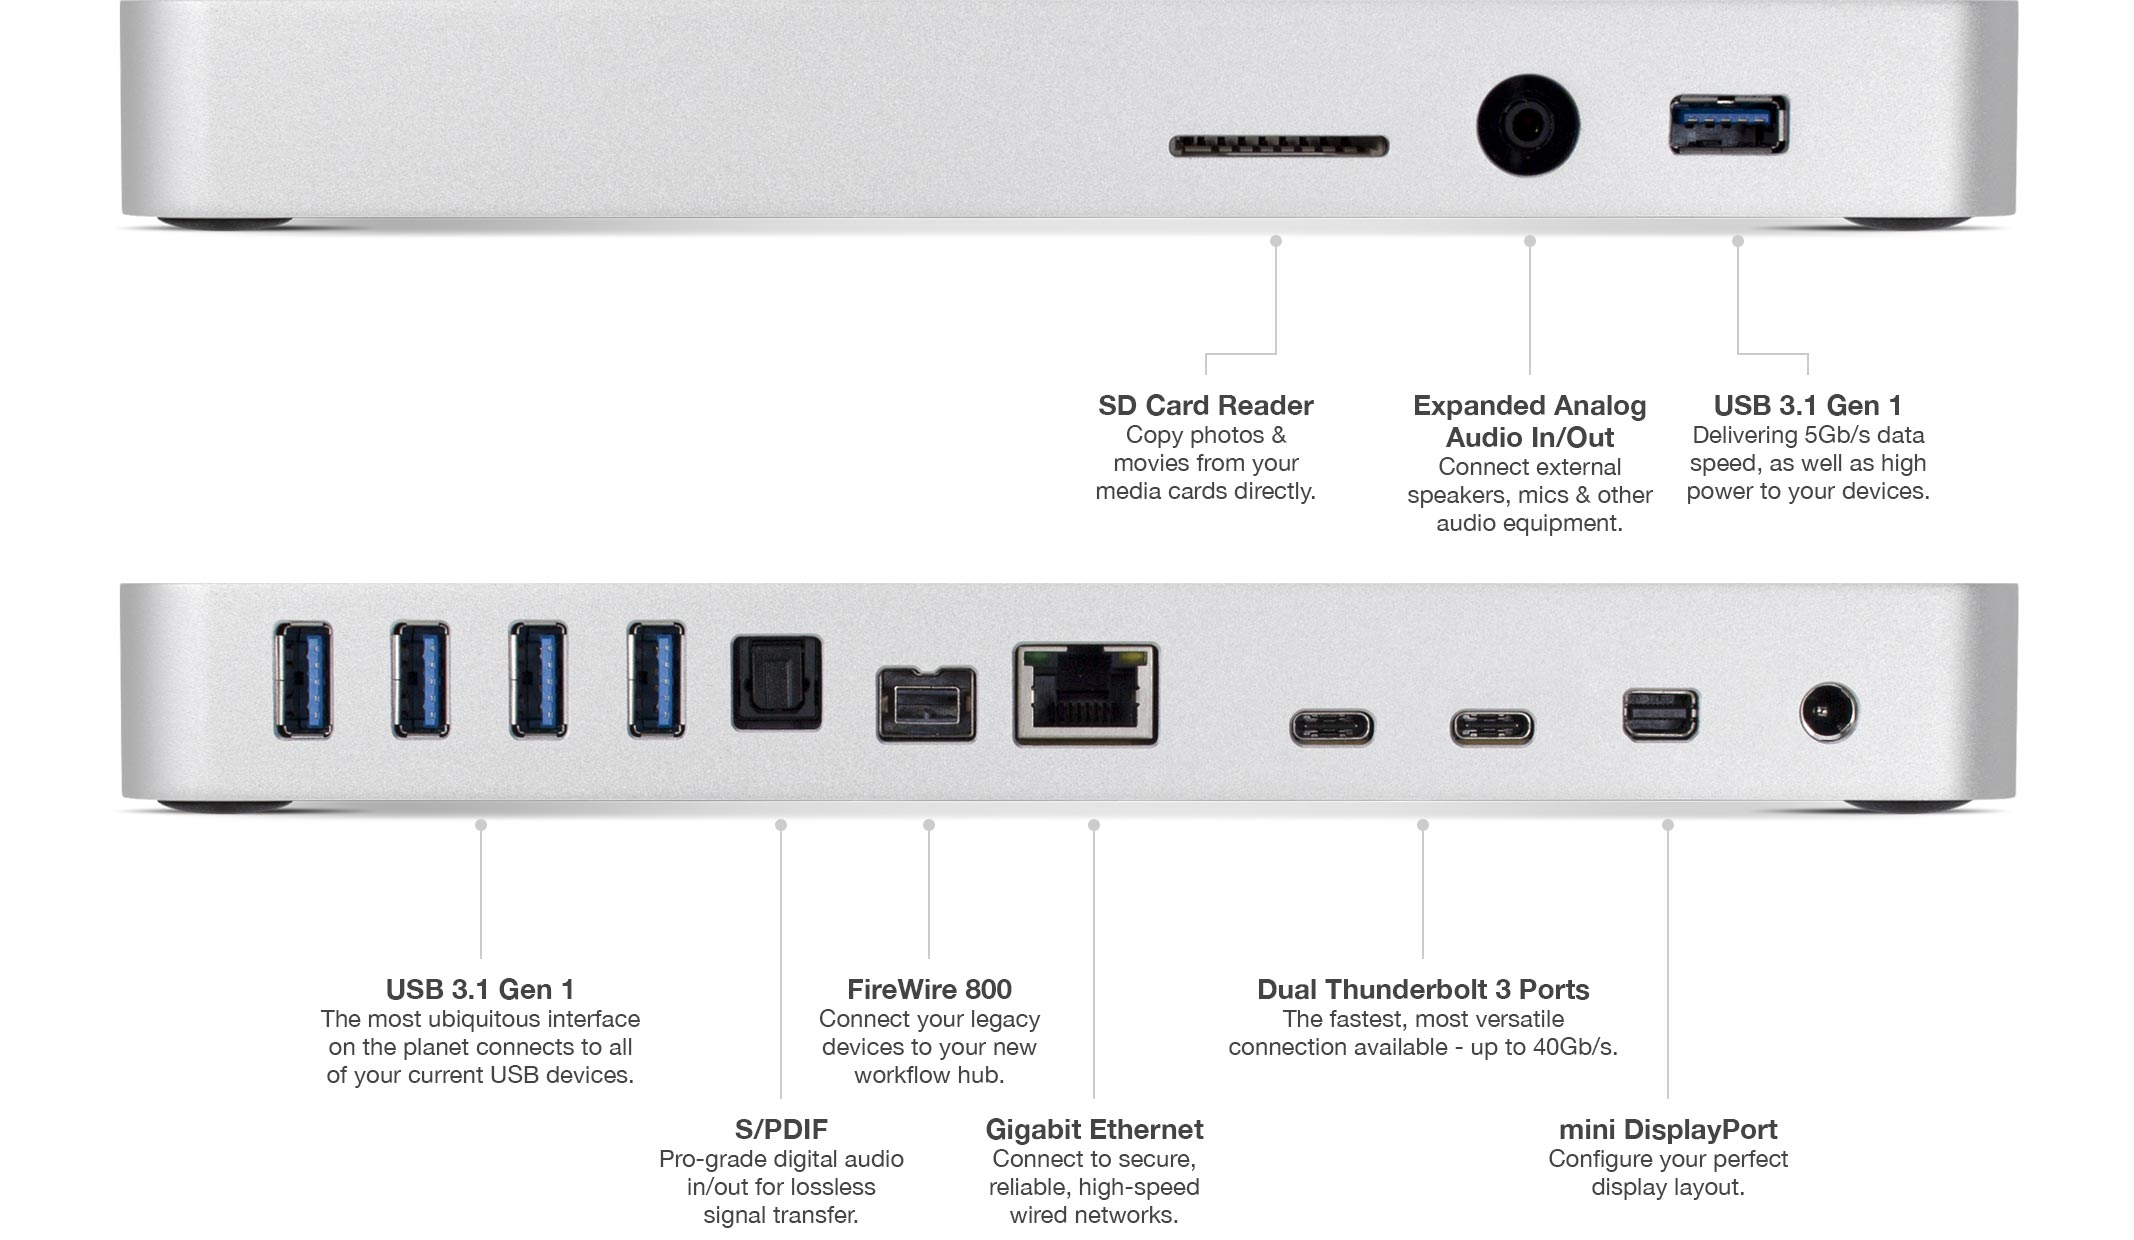 owc 39 s new thunderbolt 3 dock adds 13 additional ports to your macbook pro. Black Bedroom Furniture Sets. Home Design Ideas